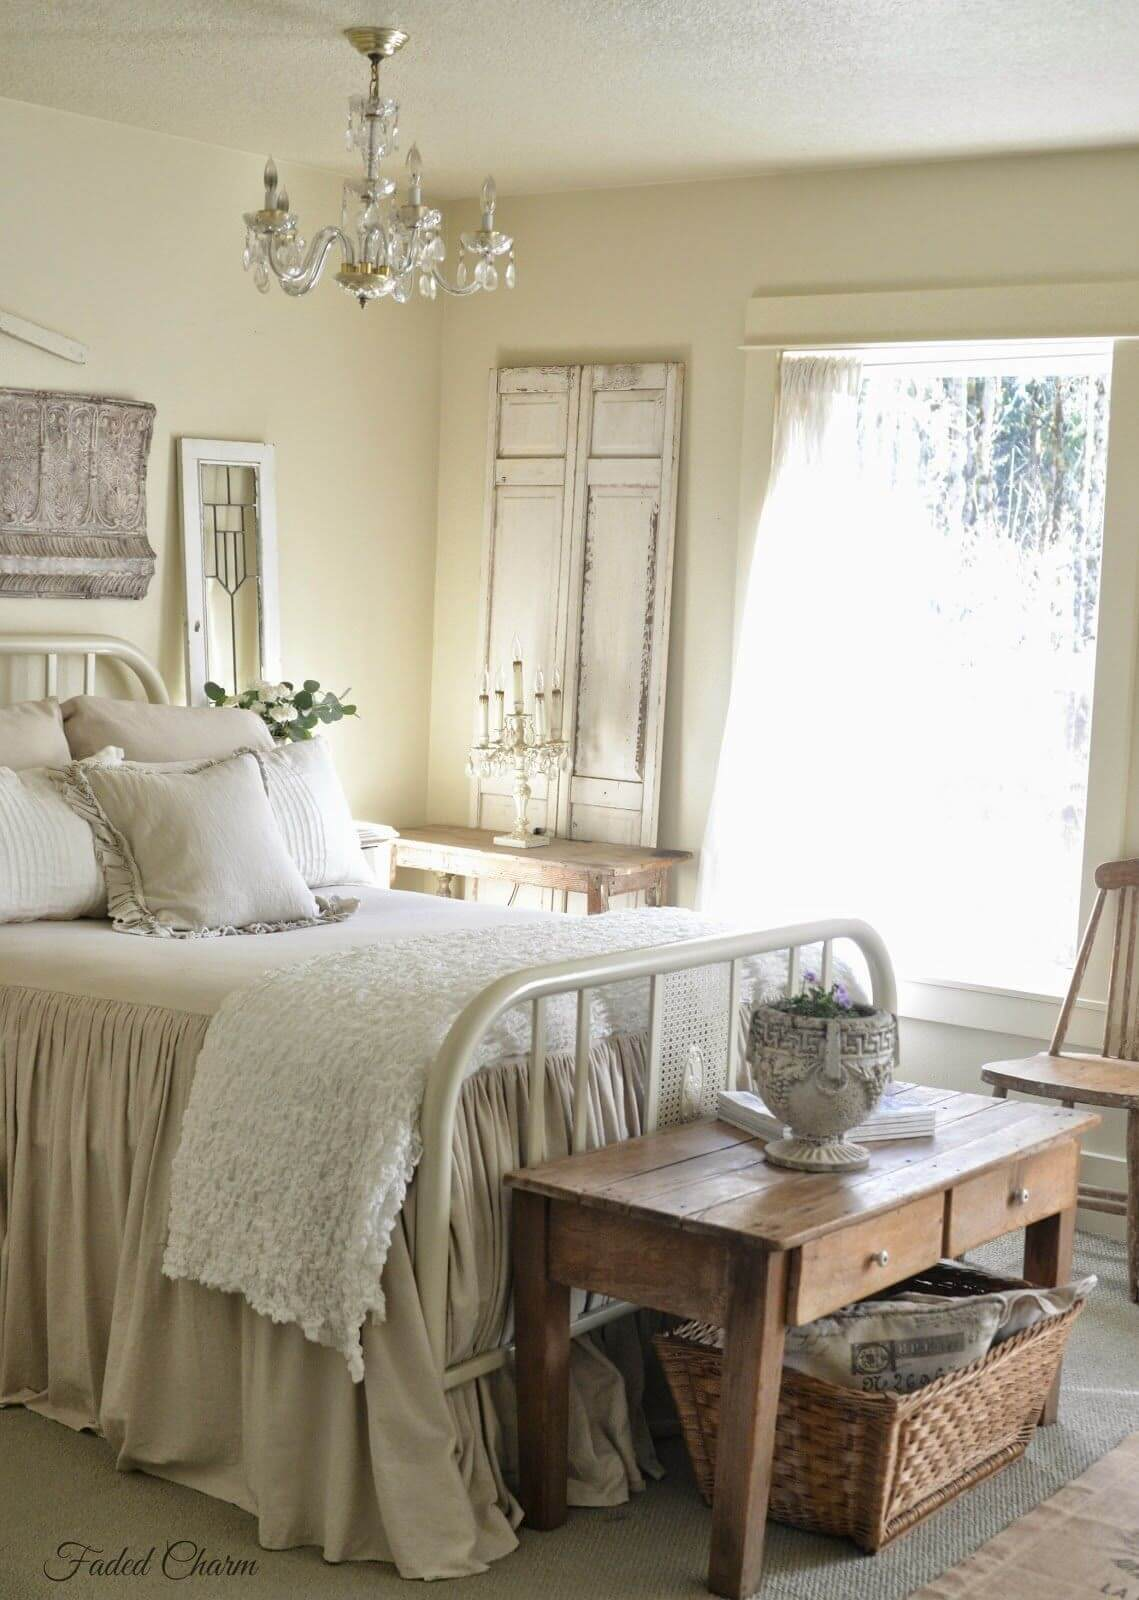 French Country Bedroom Decor | Printable Worksheets and Activities ...